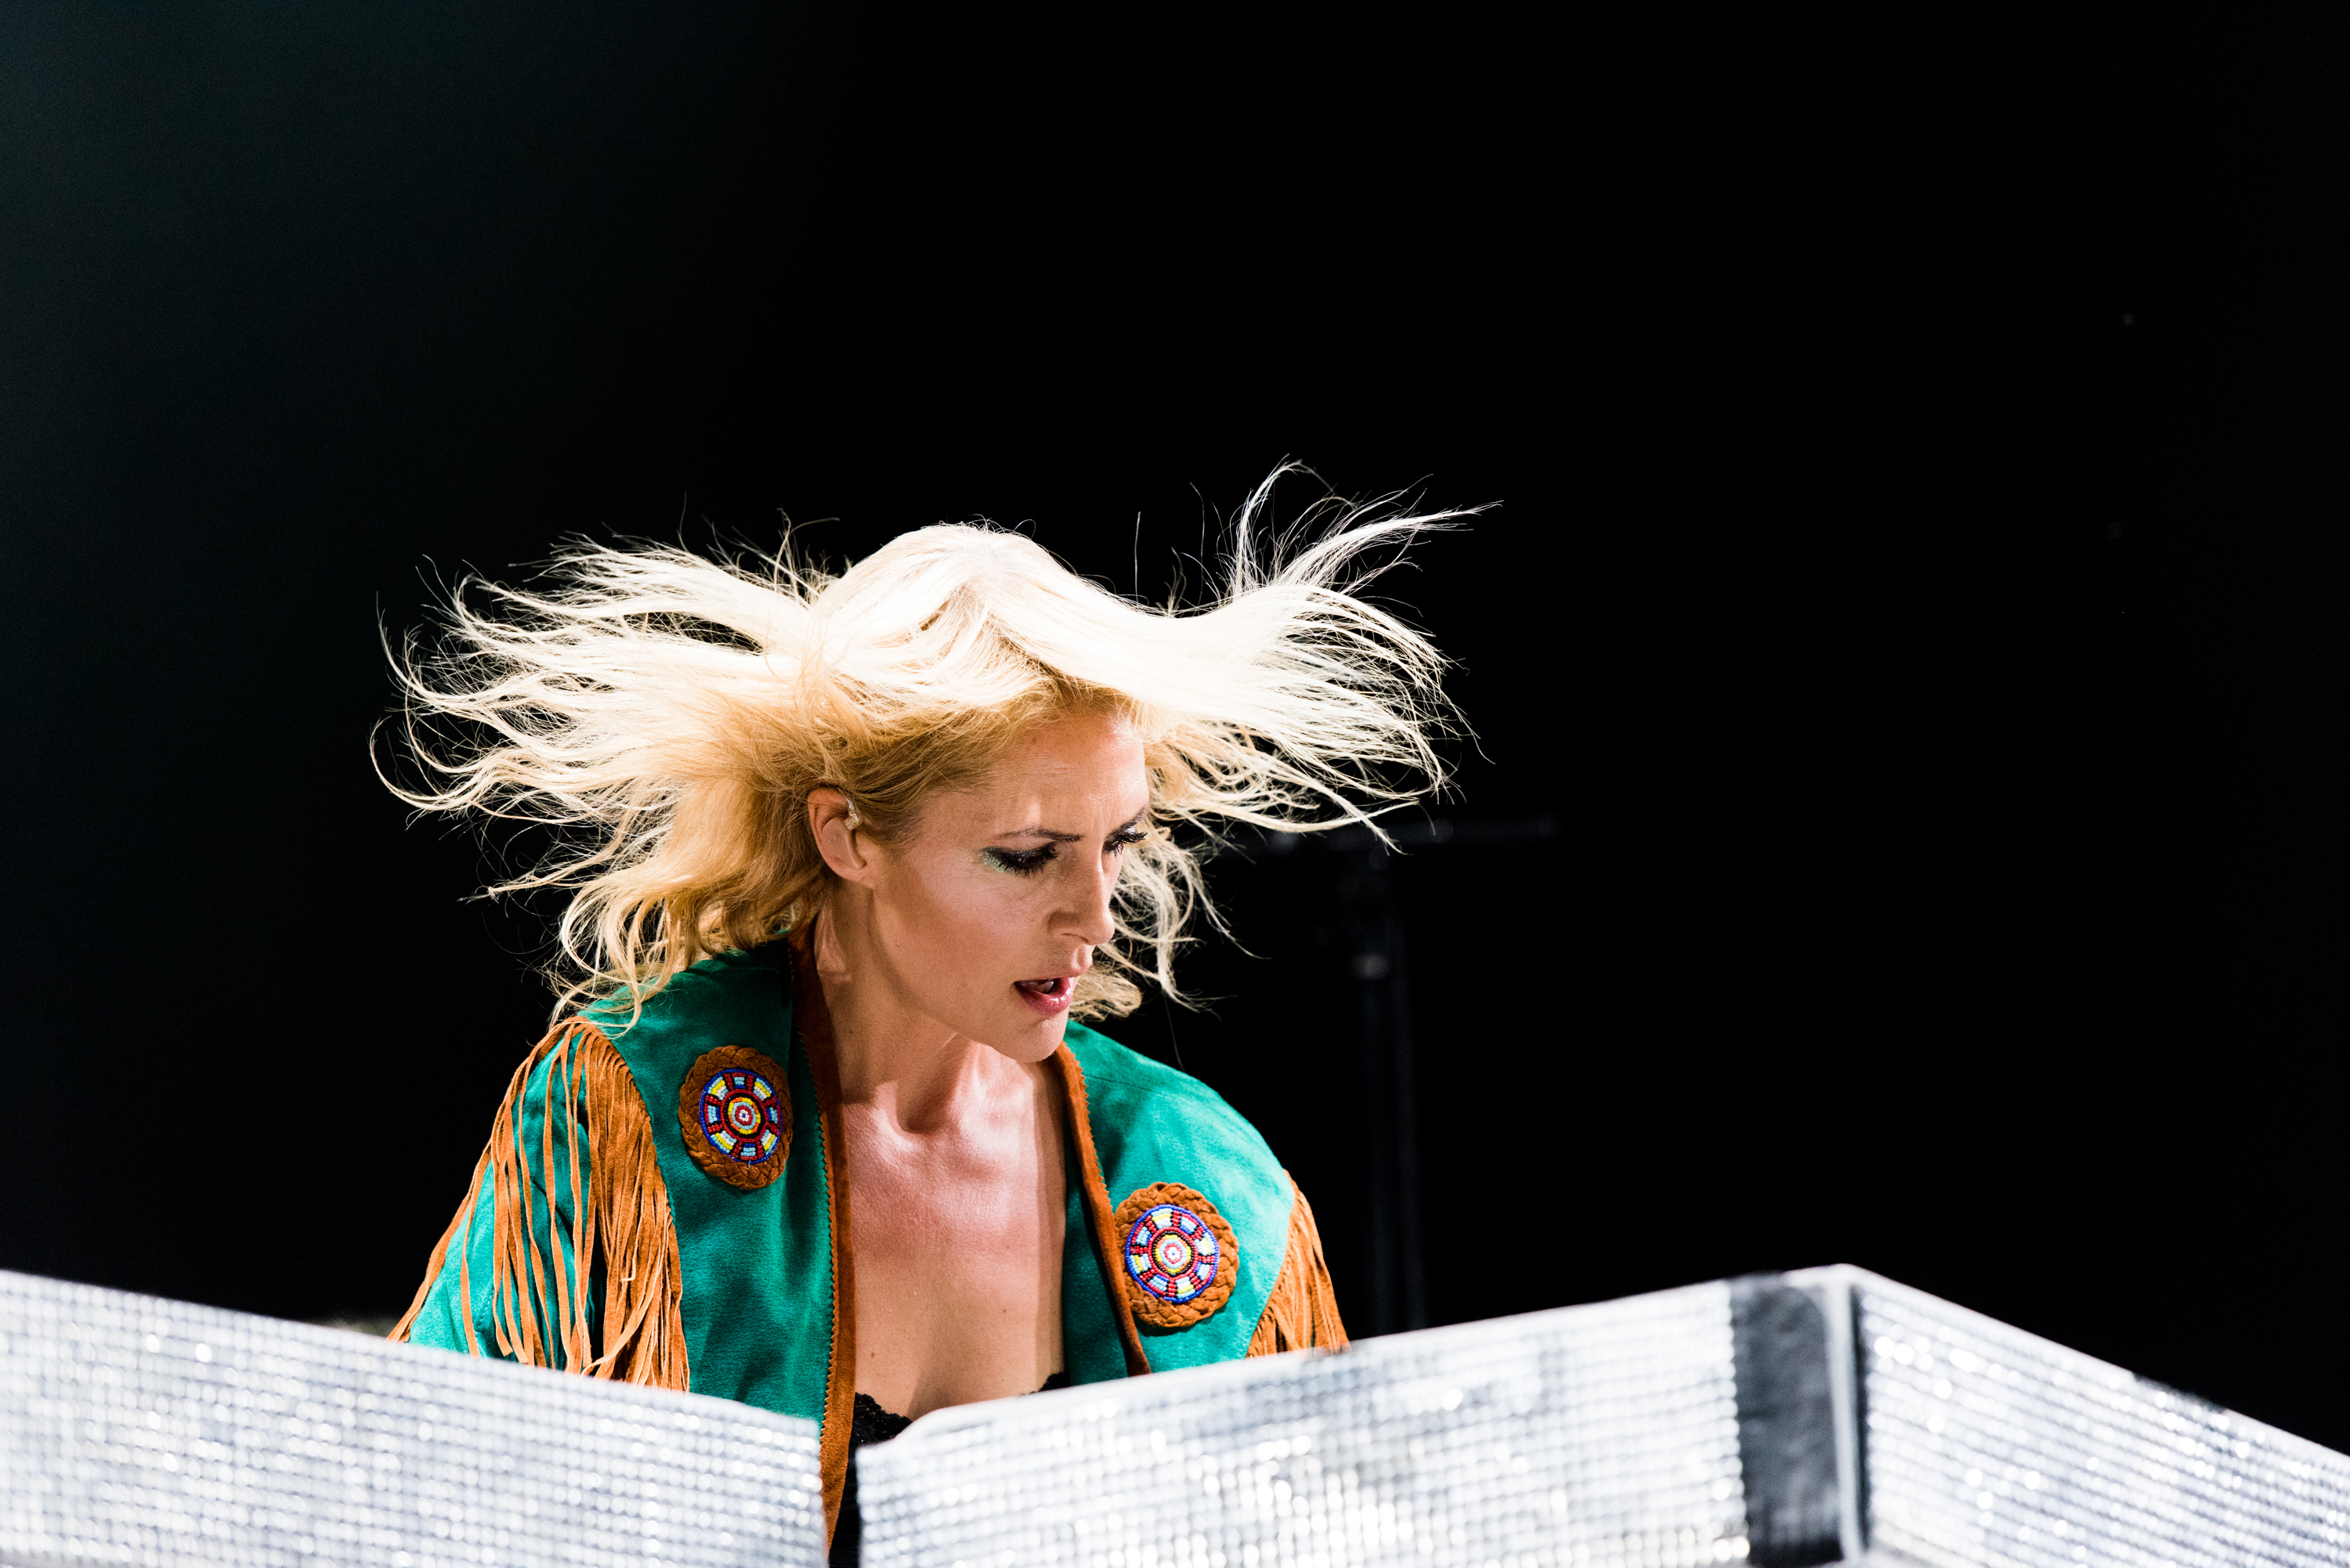 Emily Haines of Metric performs on stage during 2015 Music Midtown at Piedmont Park on Sept. 18, 2015 in Atlanta.